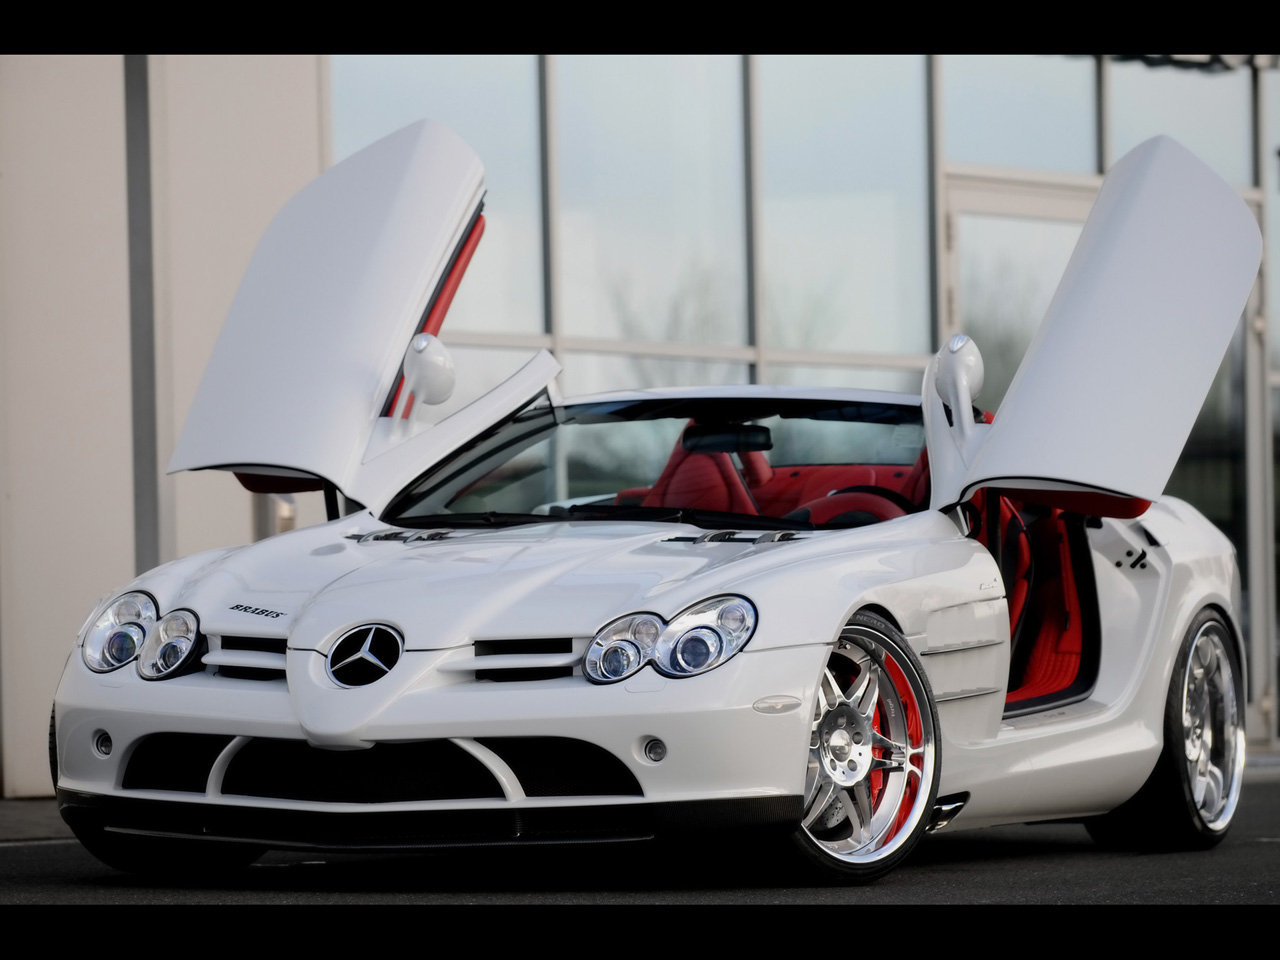 Mercedes benz slr world of cars for Mercedes benz cars images